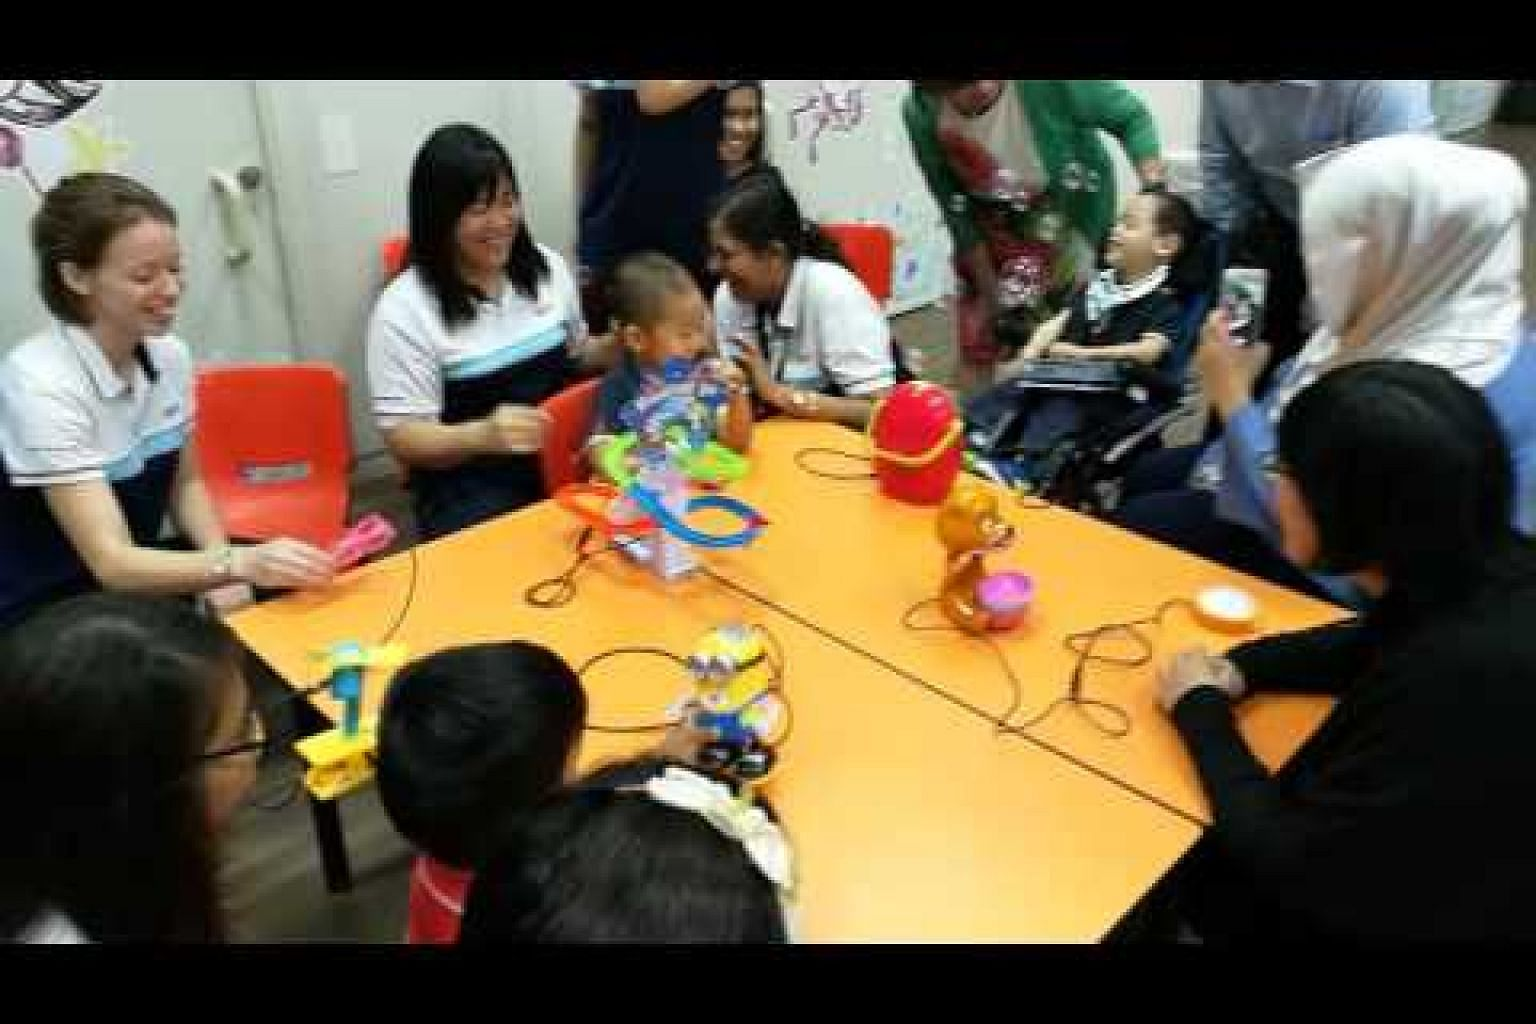 Bringing joy to special needs children through 'toy hacking' Pt 1